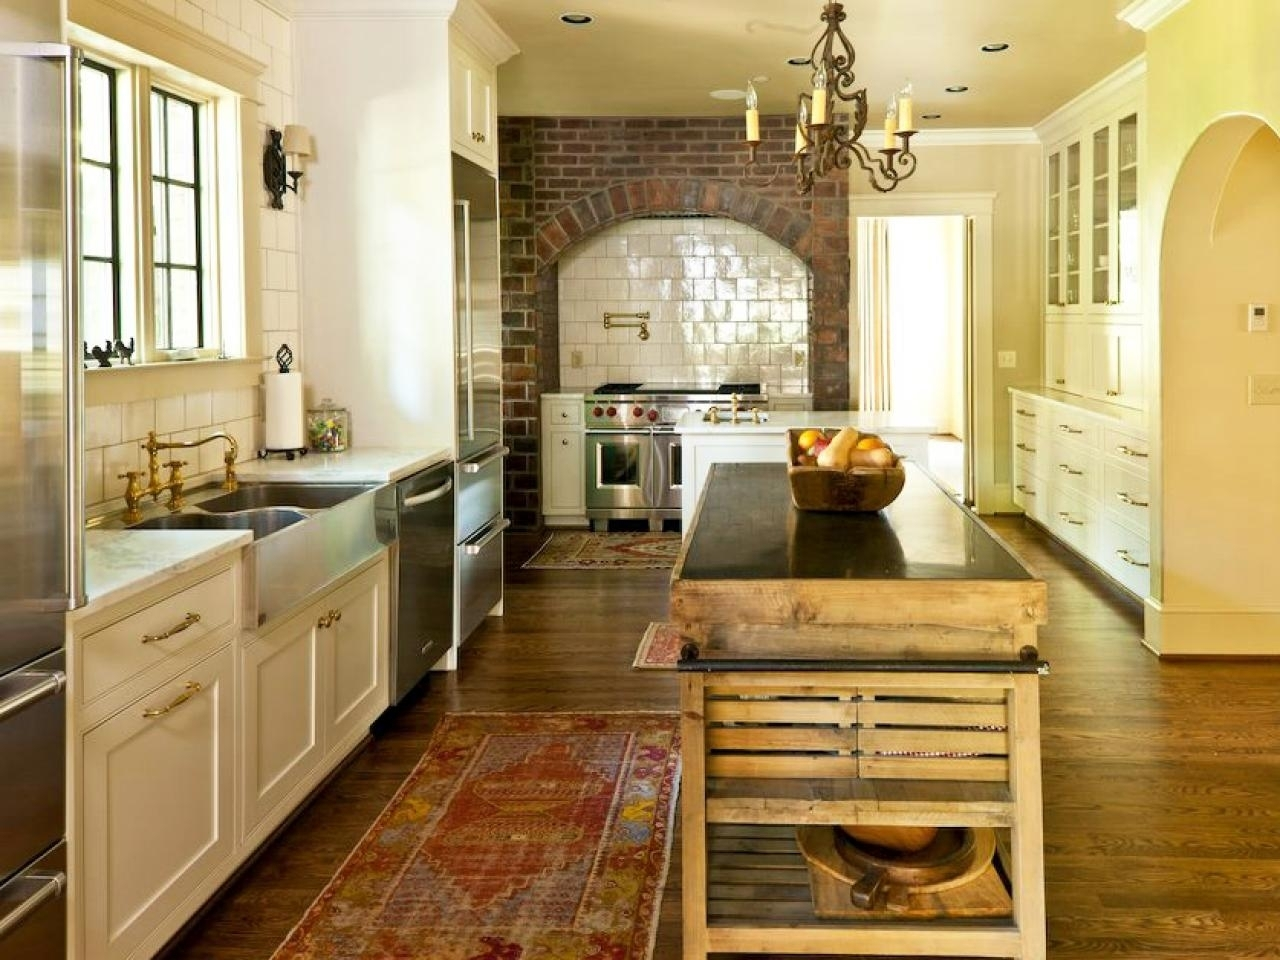 French Country Kitchen Cabinets: Pictures, Options, Tips .